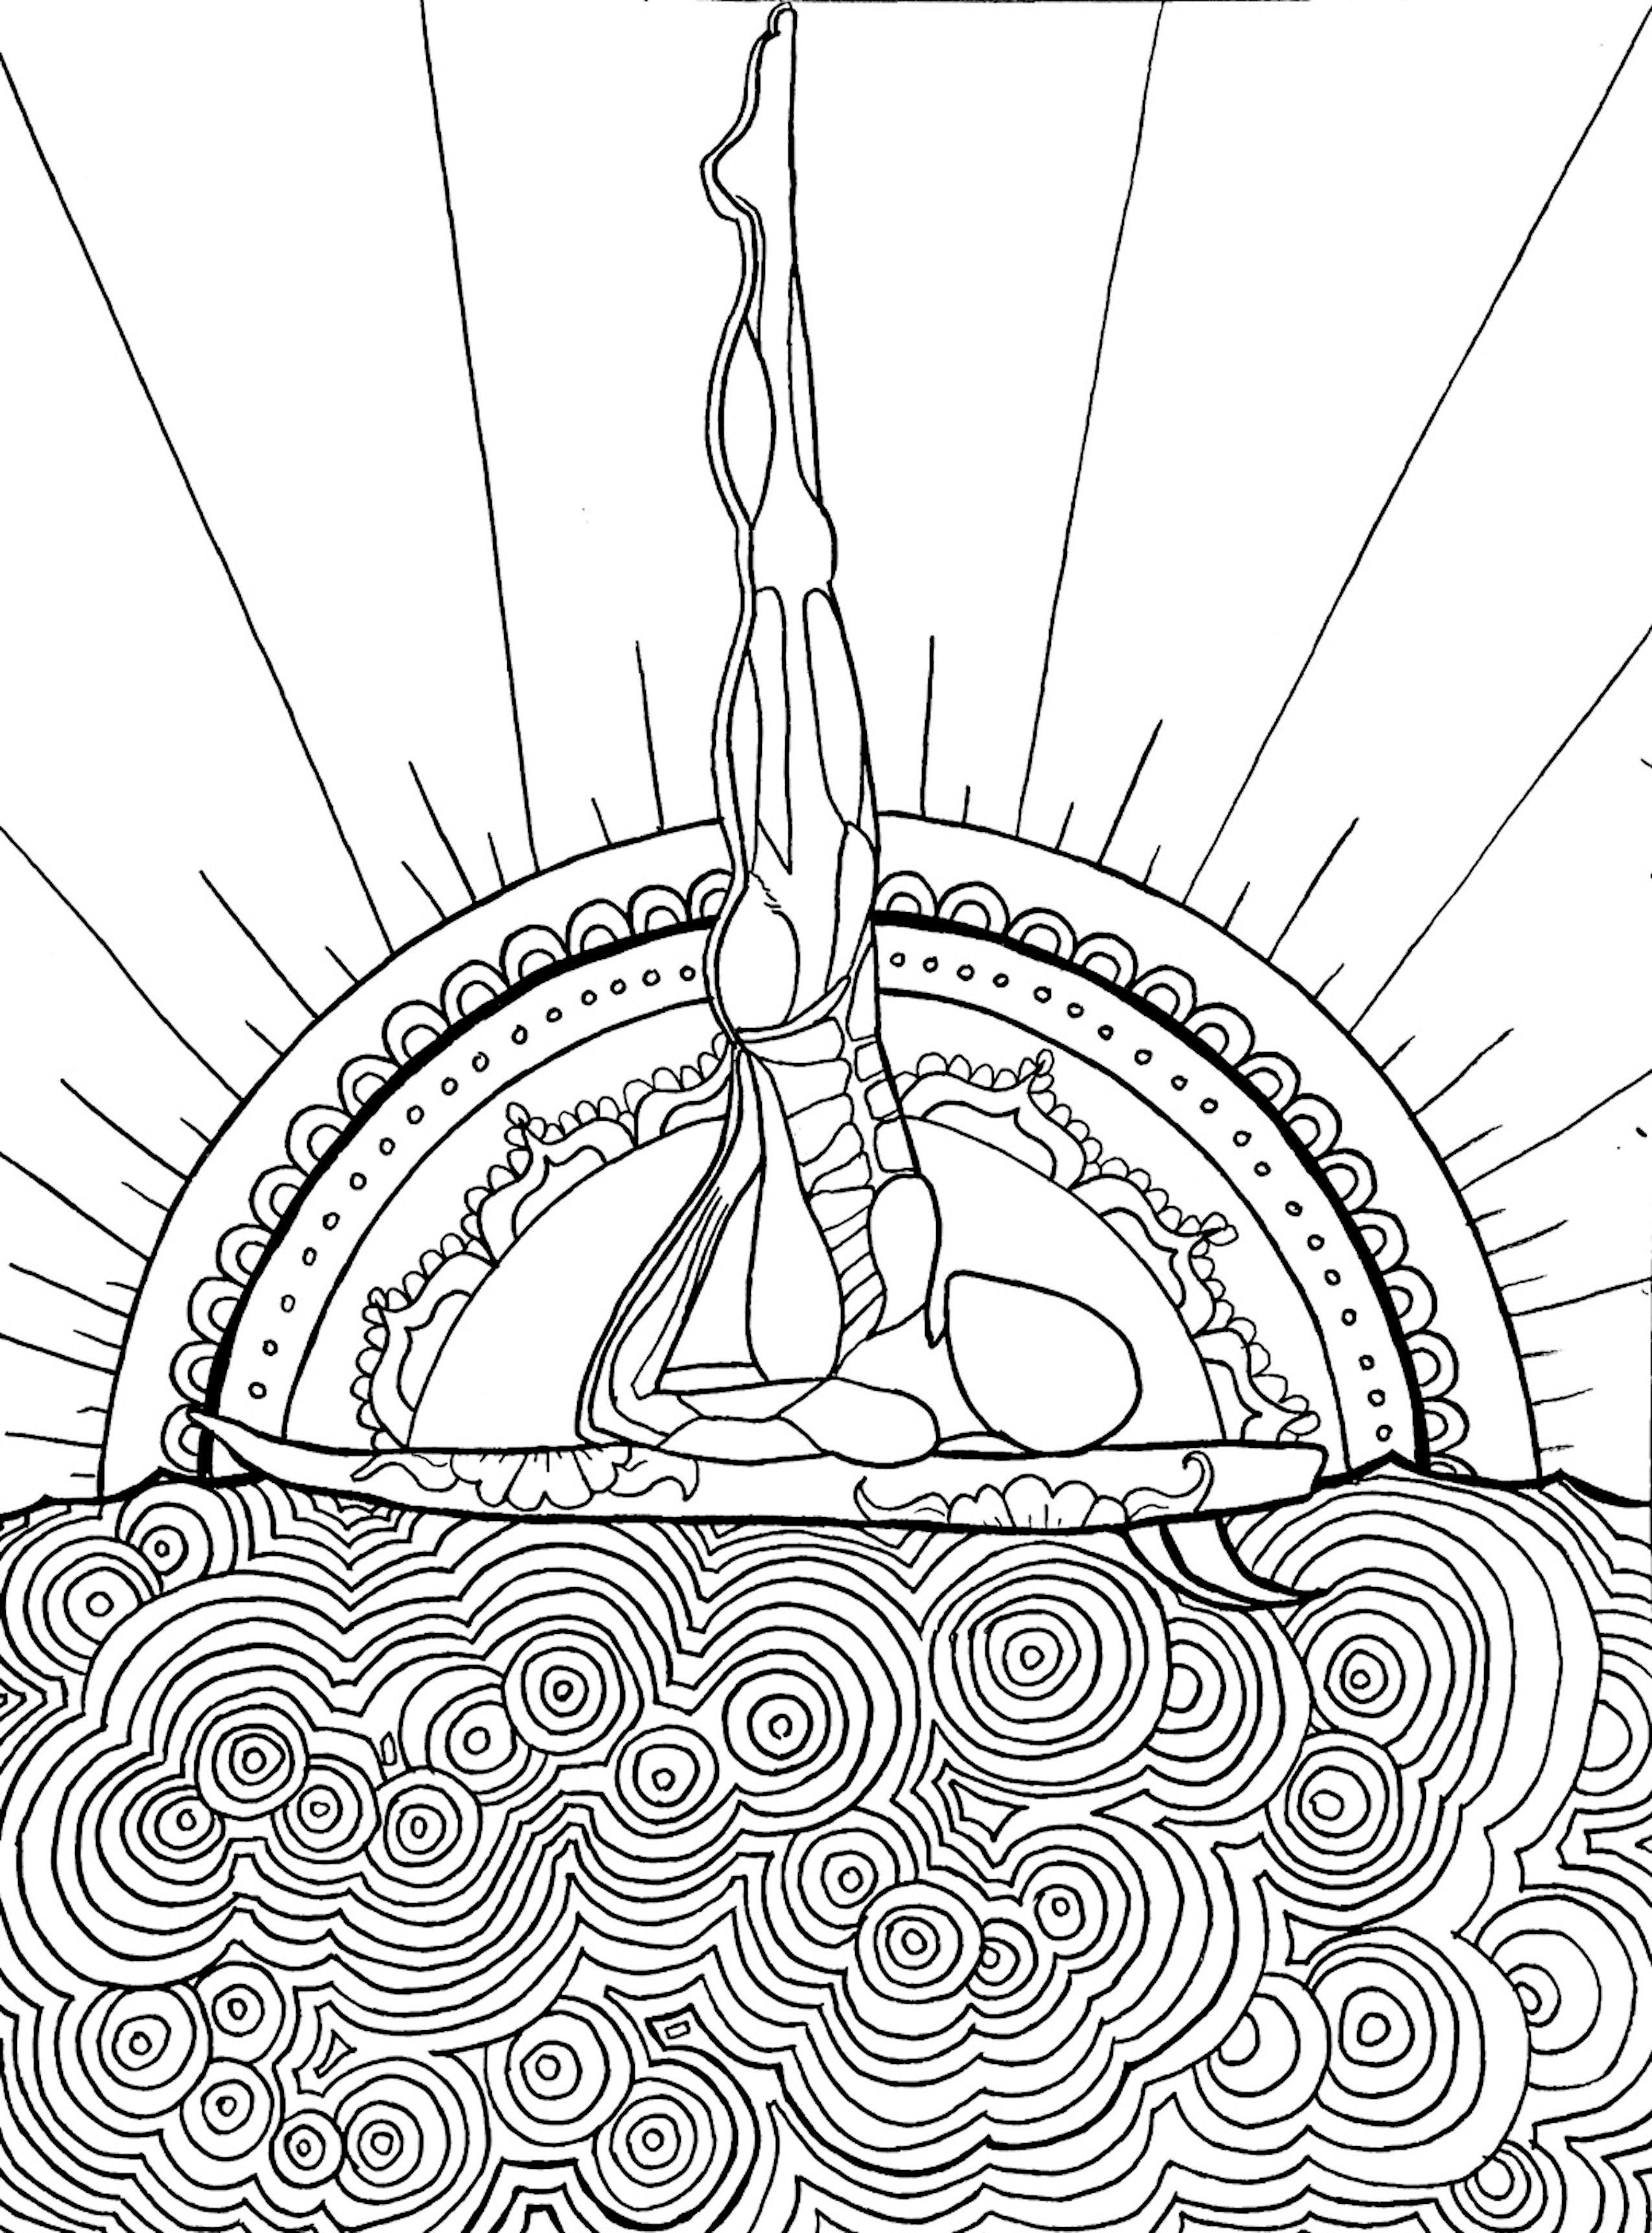 A Coloring Page From Yoga In Color A Yoga Anatomy Coloring Exploration Check It Out Here Http Anatomy Coloring Book Yoga Coloring Book Coloring Books